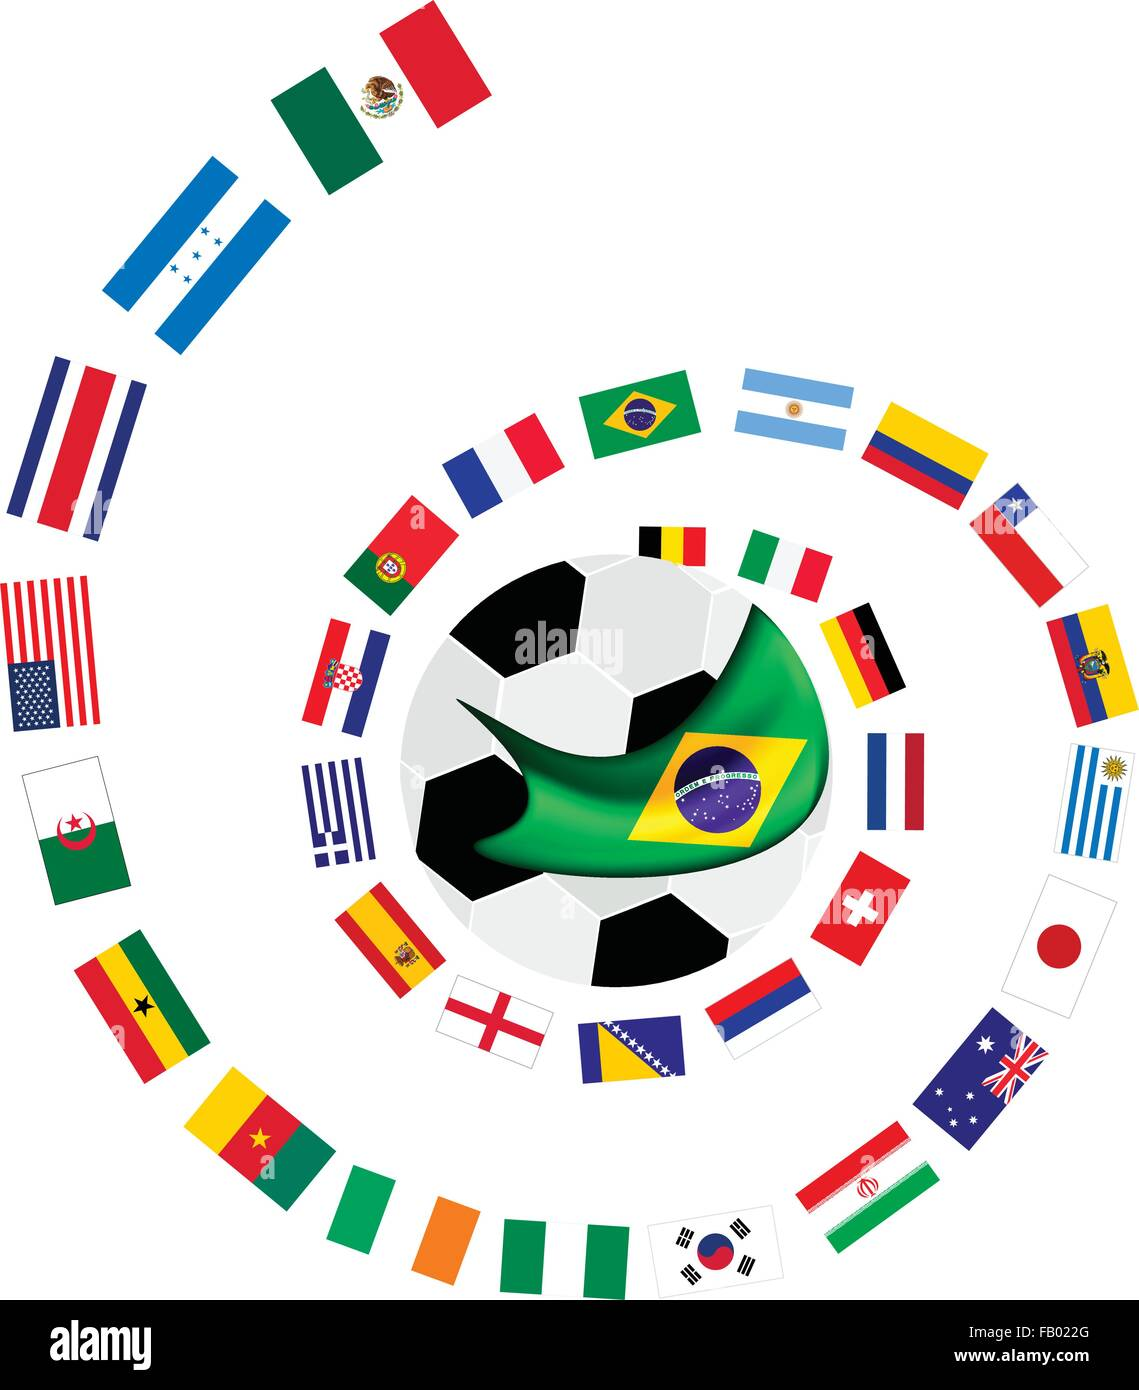 Brazil 2014, An Illustration of The Flags of 32 Countries Around A Soccer Ball of of Football World Cup in Brazil. - Stock Vector